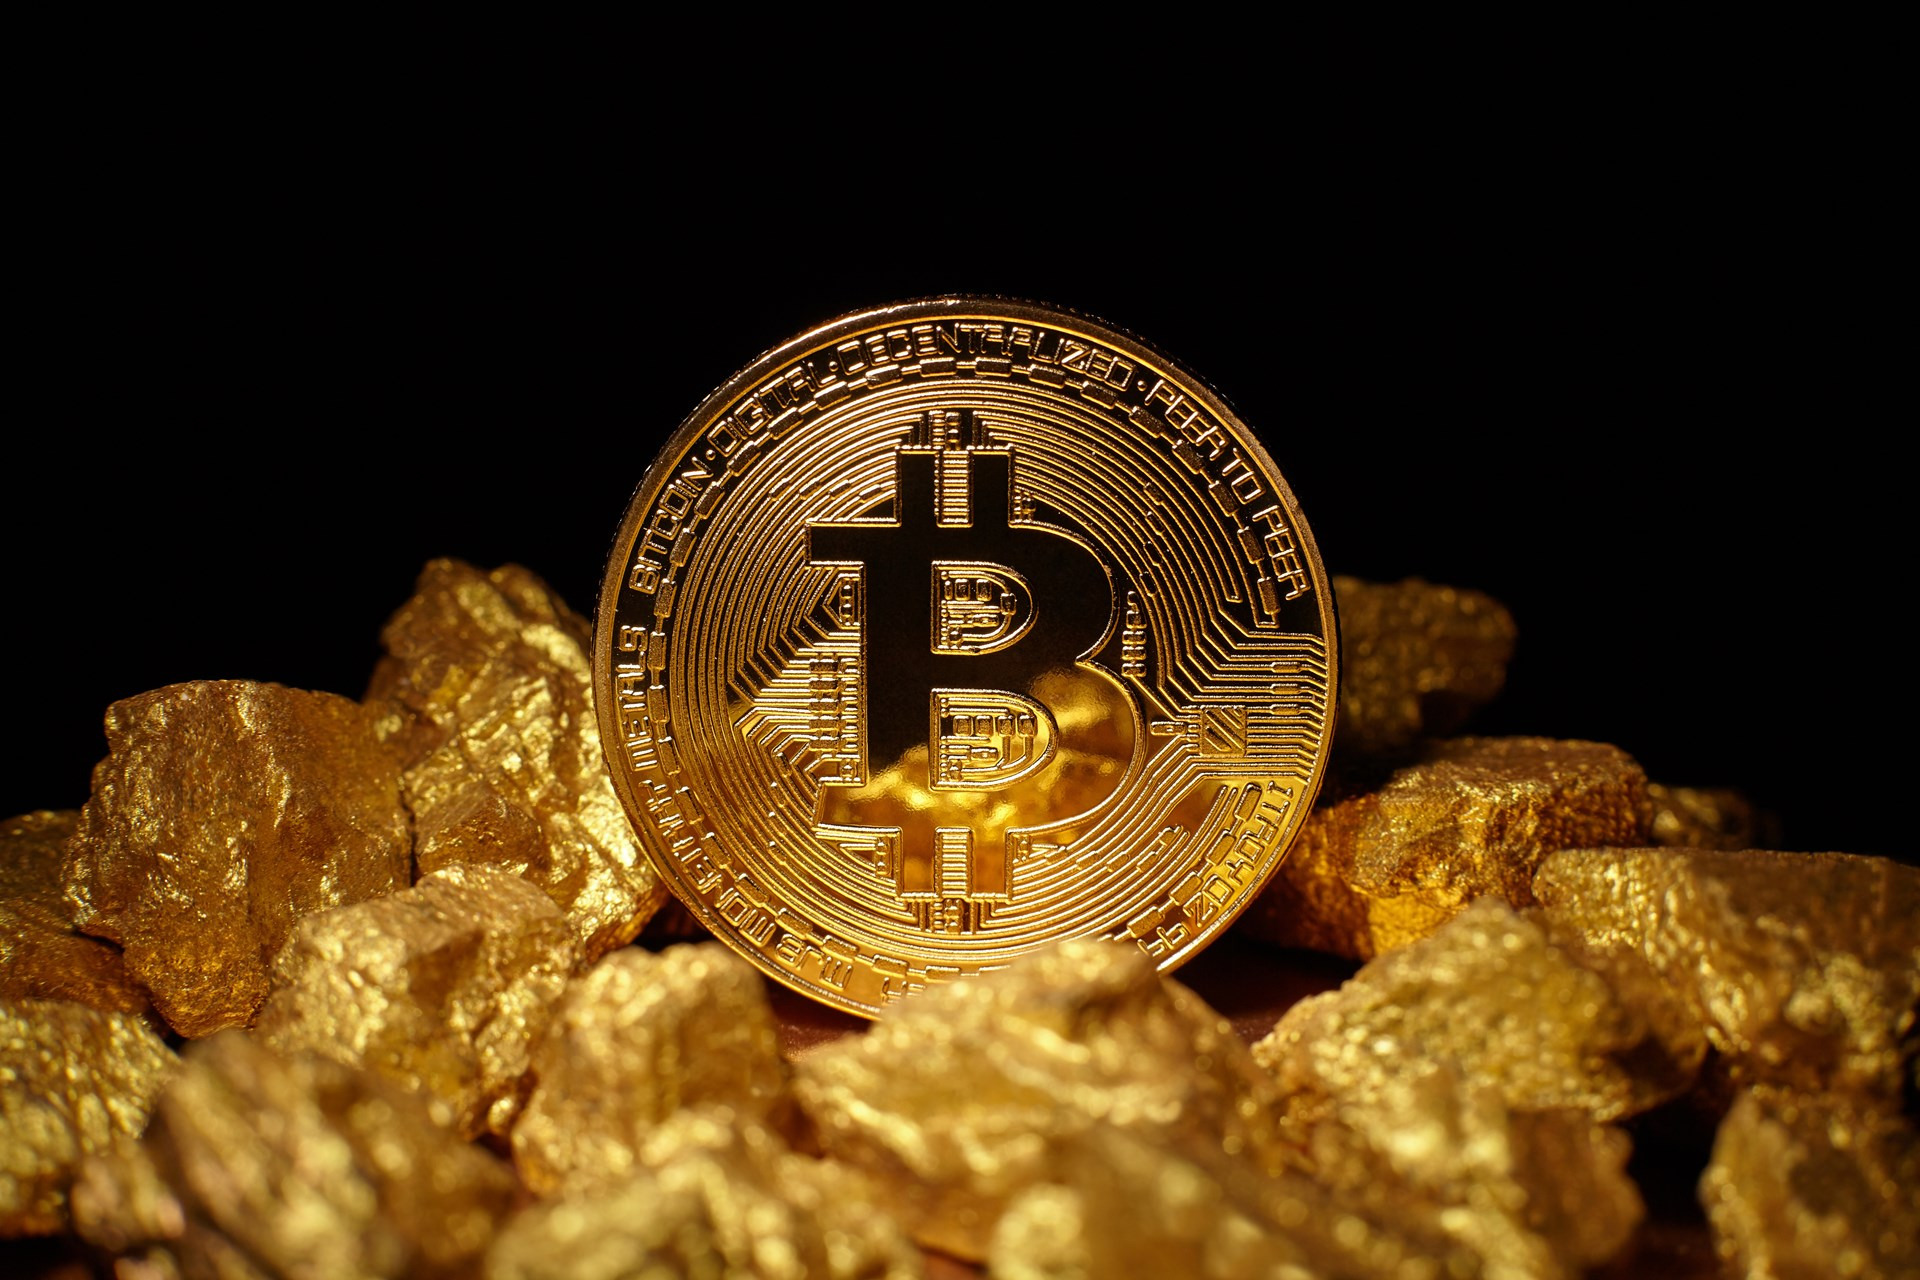 Bitcoin-Rises-to-5775-and-the-Drop-Gold-Campaign-Gains-Traction-